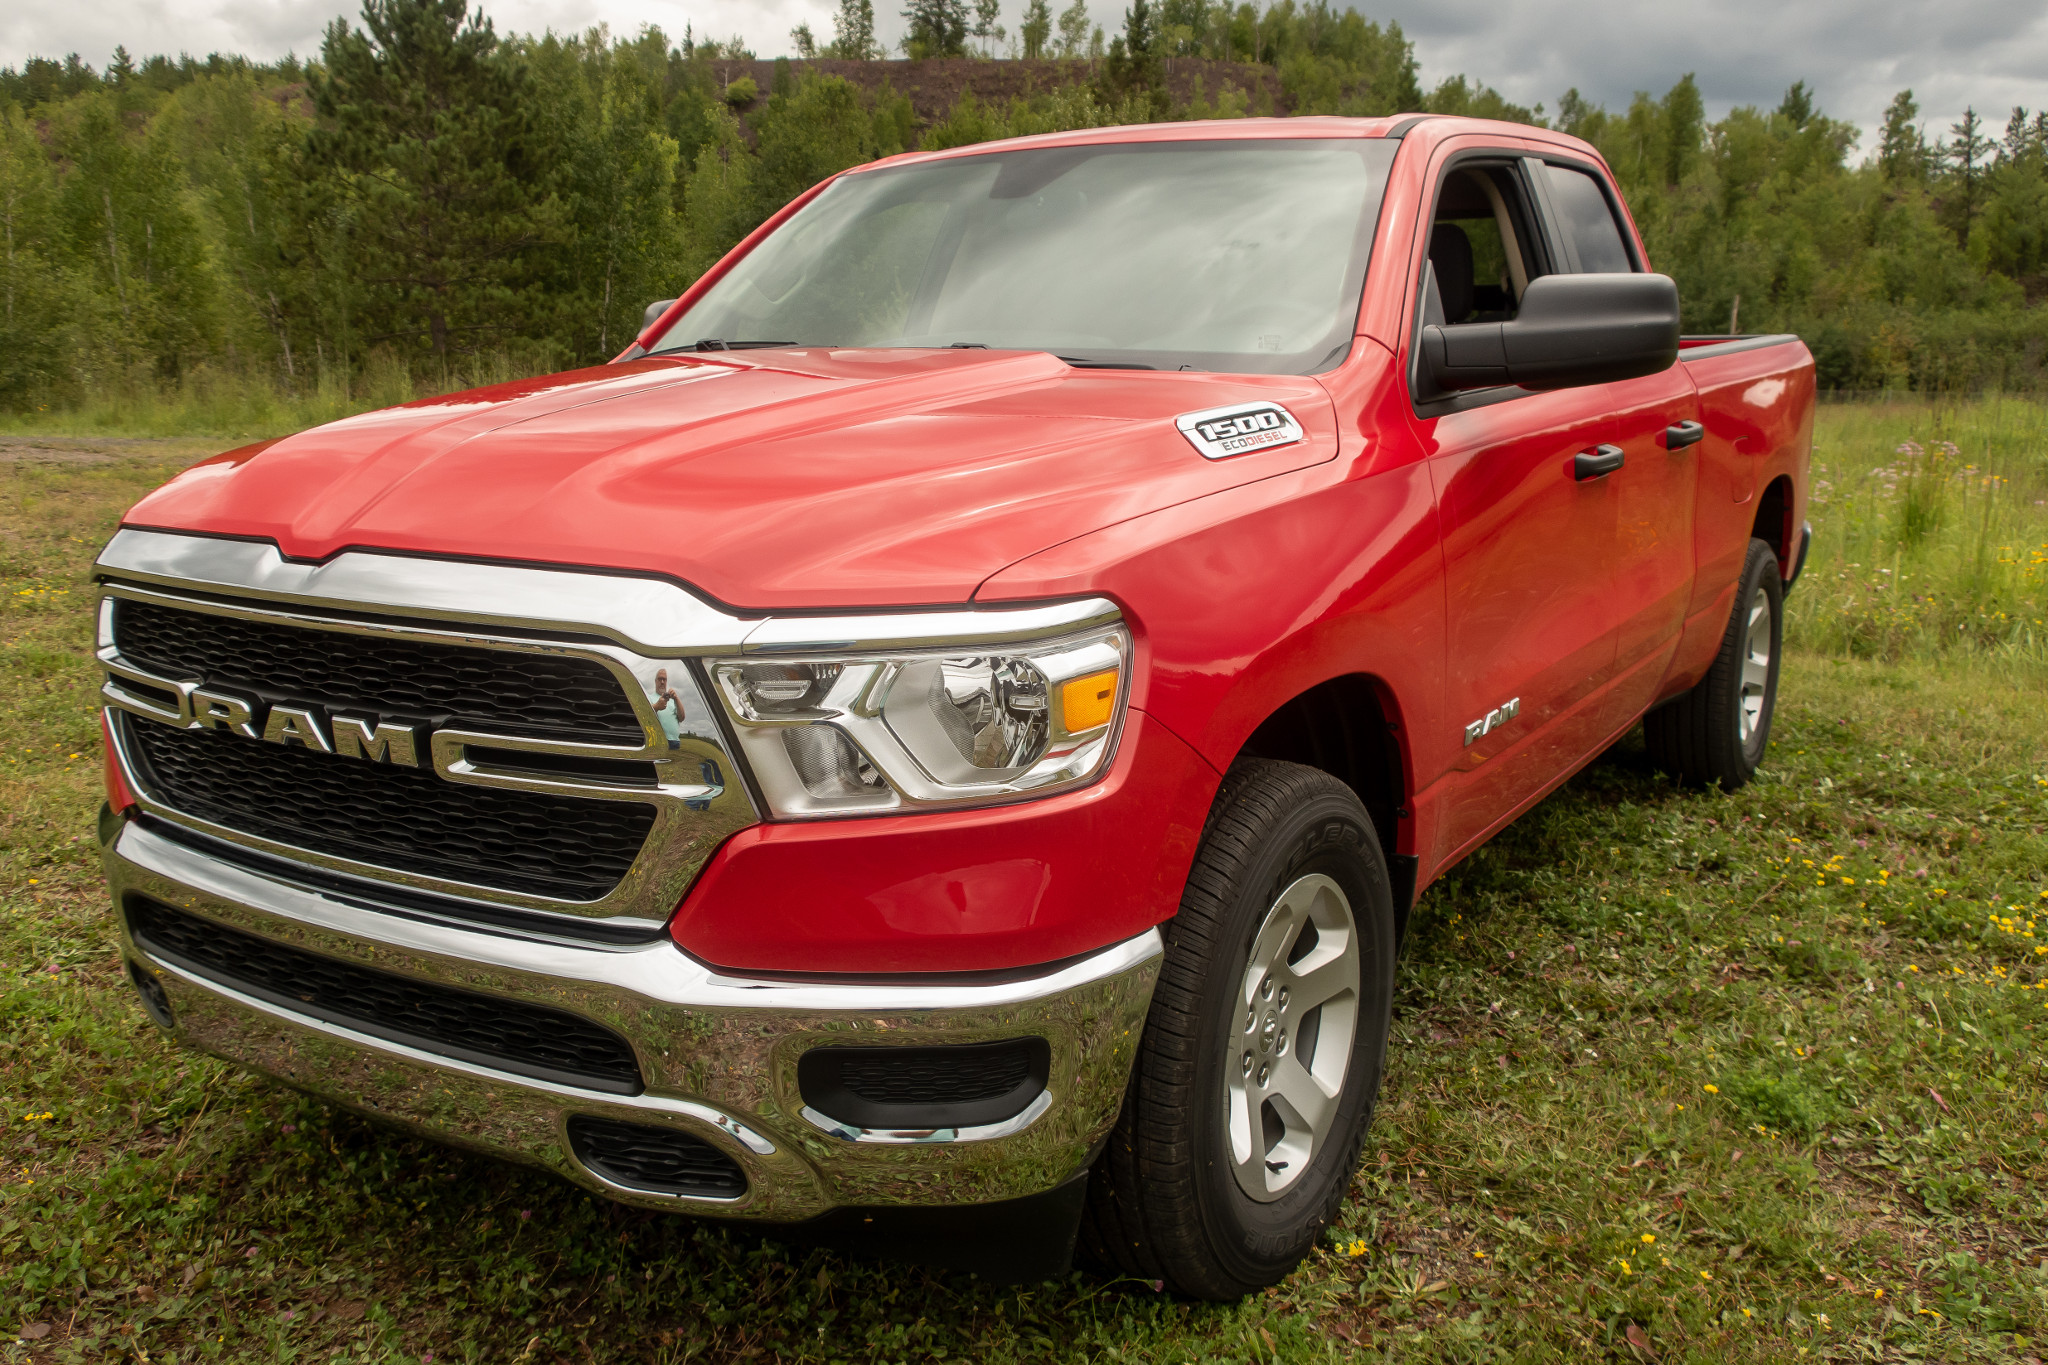 The Week in Pickup Truck News: 2020 Ram EcoDiesel MPG, Ford Ranger Boat Towing and More